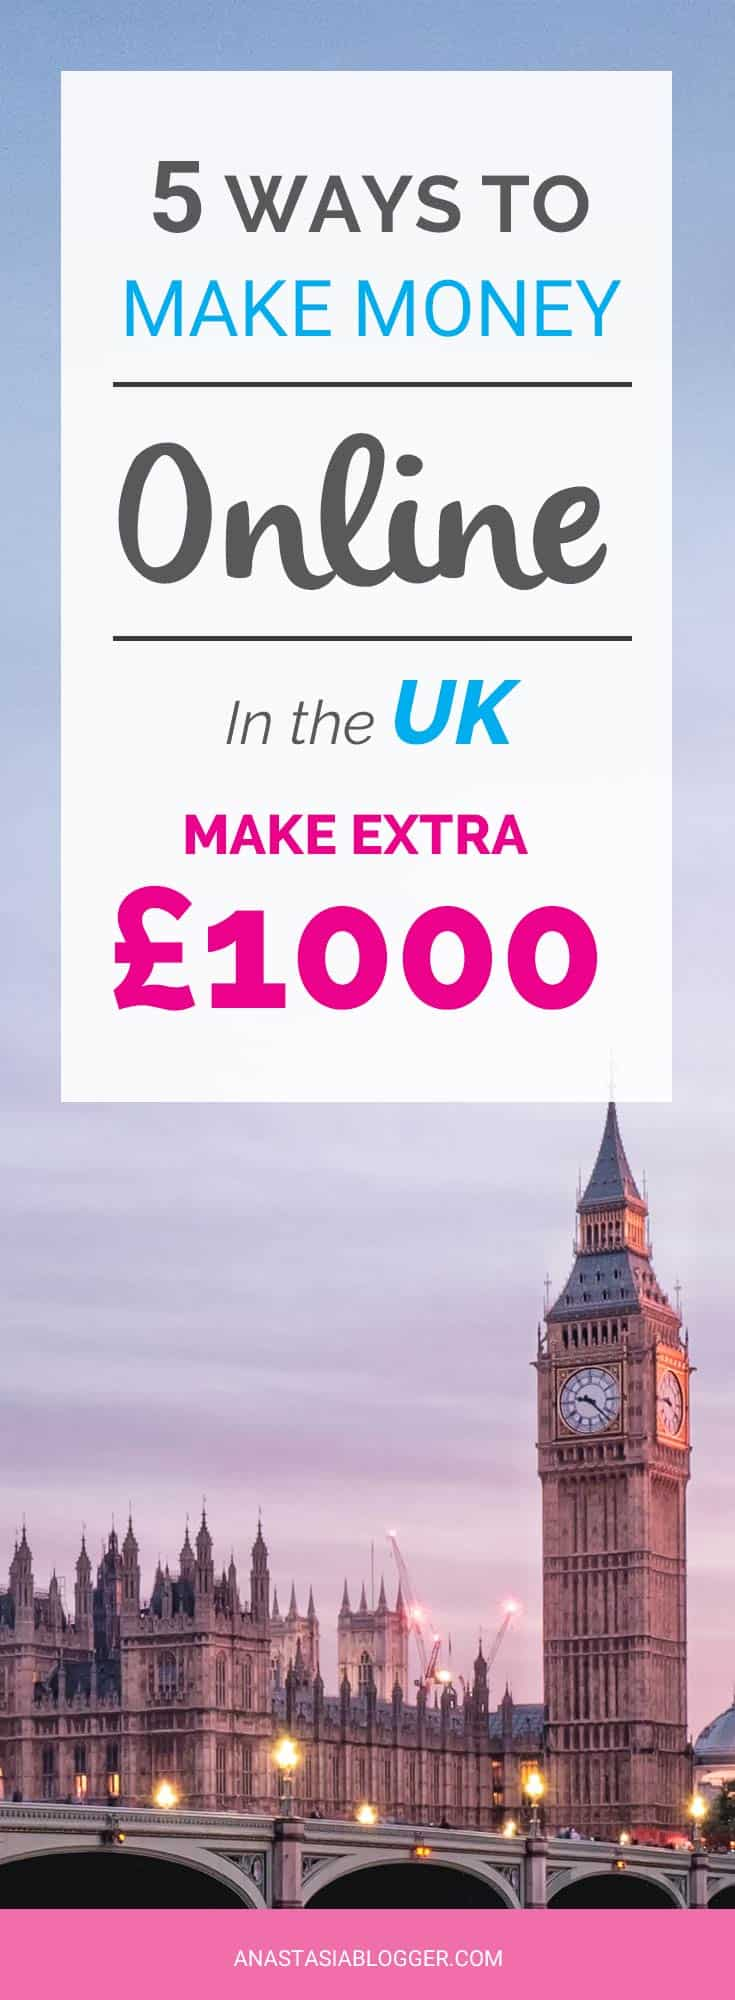 Looking for ways to make money UK extra cash? Make money in the UK work at home. Make money online UK tips - best surey sites, micro-tasks, product testing, etc.